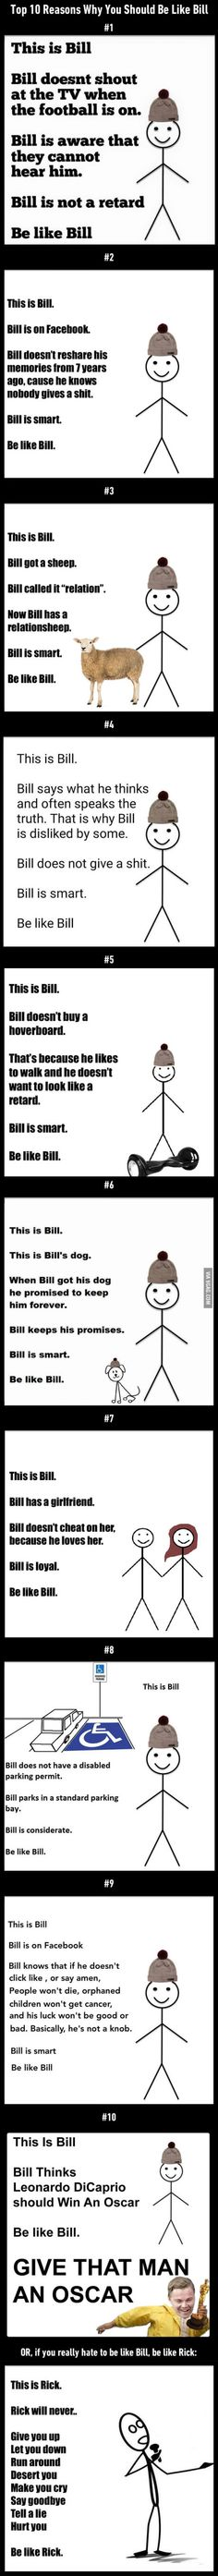 Top 10 Reasons Why You Should Be Like Bill